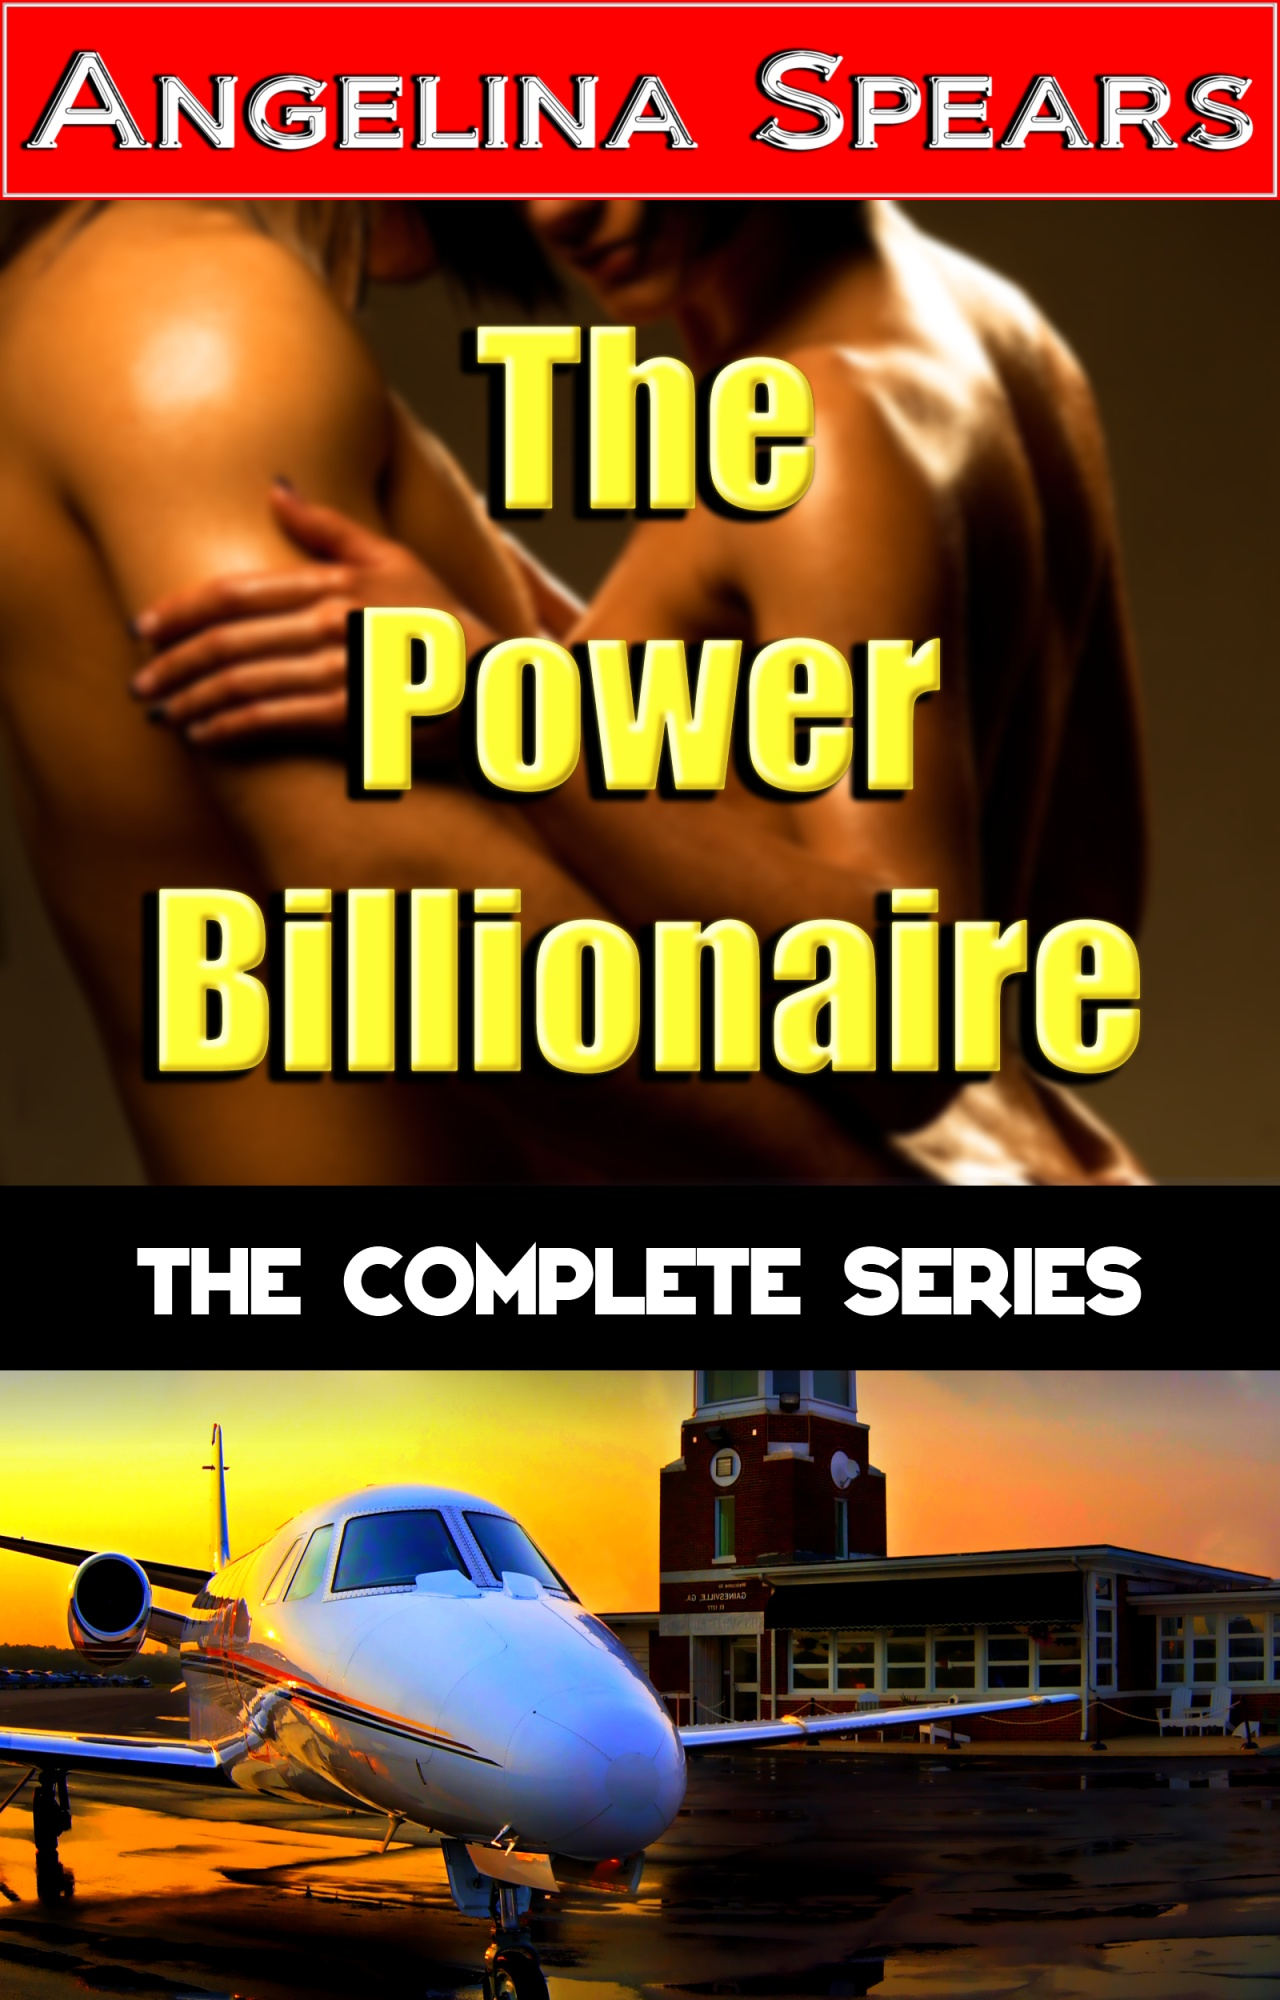 The Power Billionaire - The Complete Series